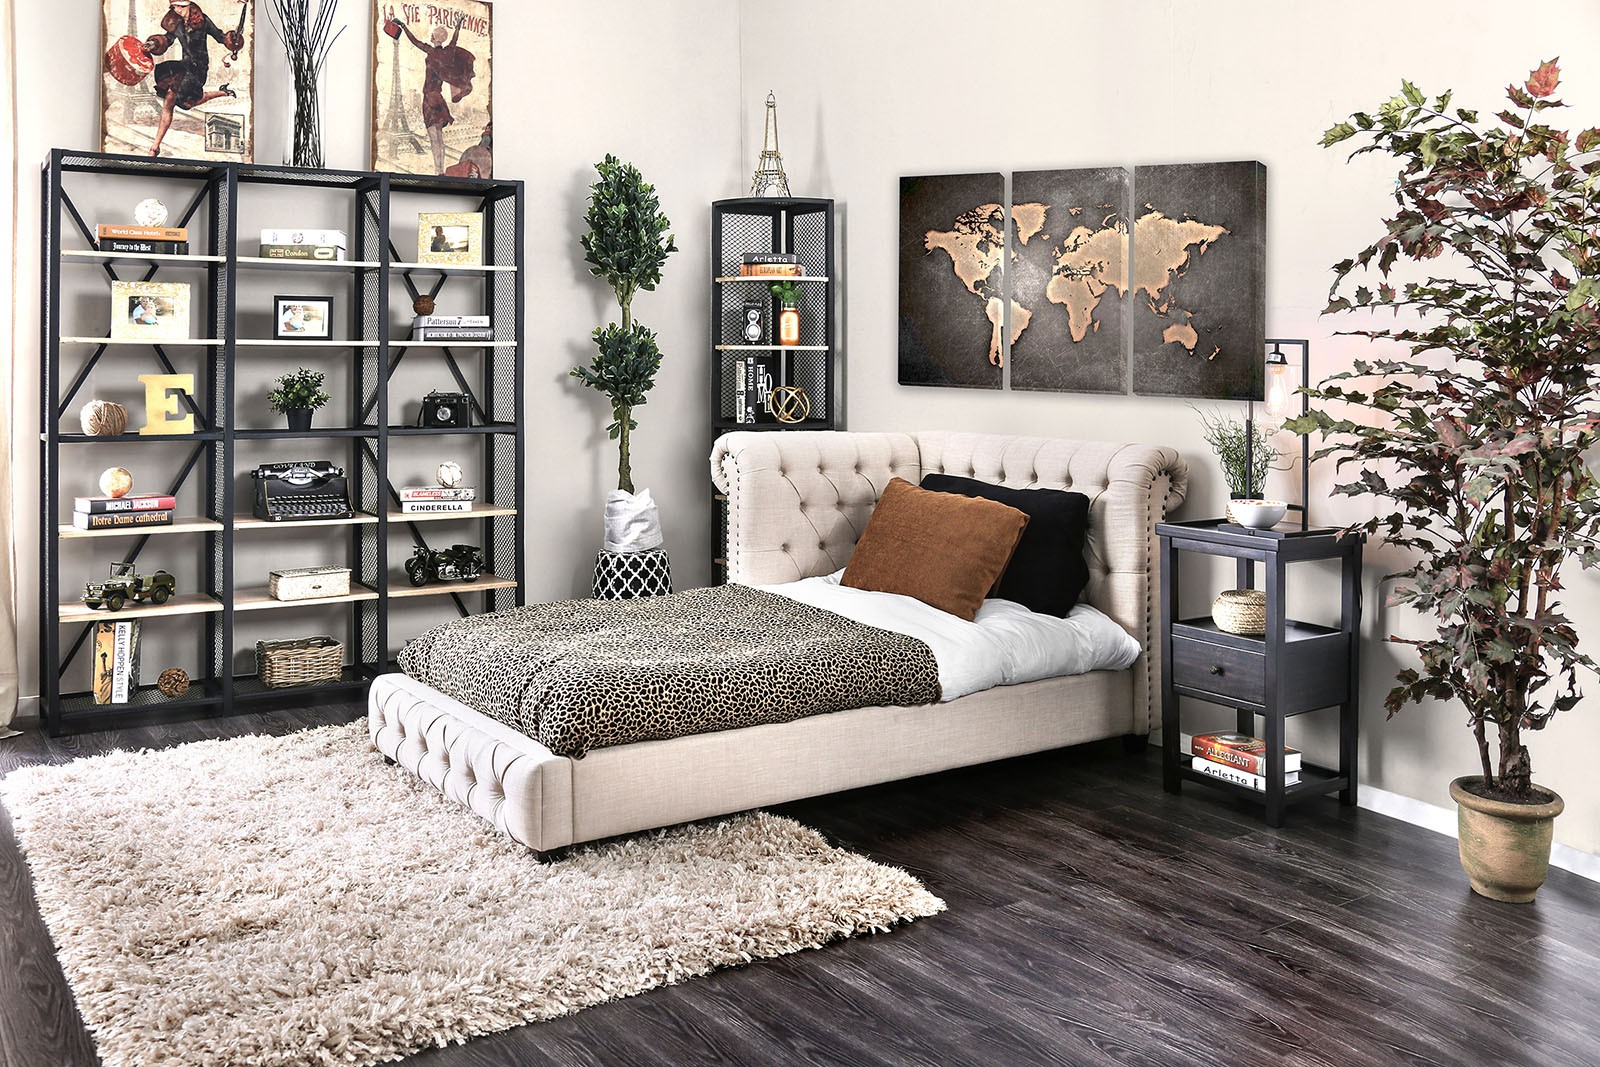 07-CM7196 Merope Twin Tufted Corner Bed $598